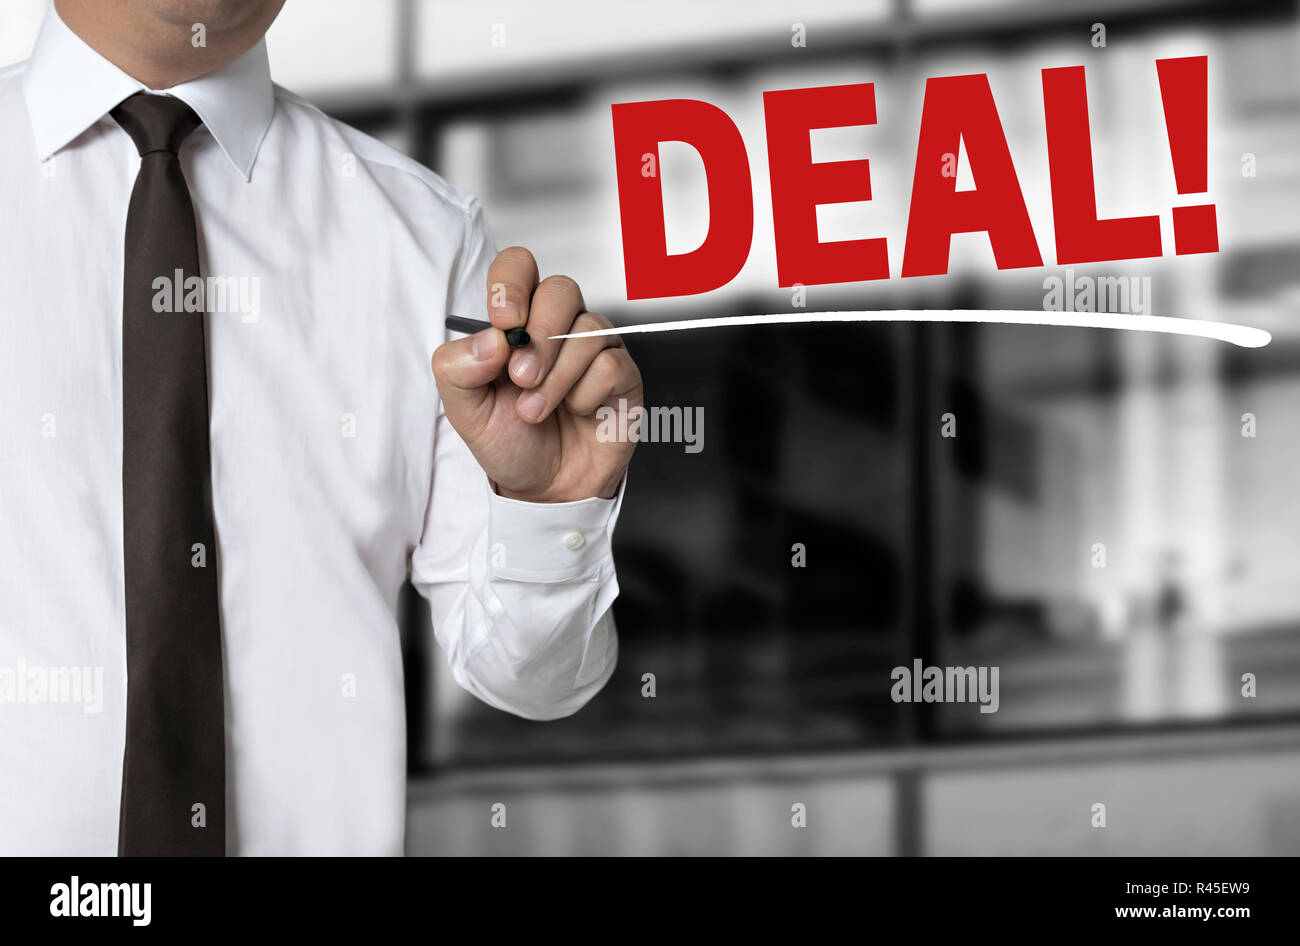 deal is written by businessman background concept - Stock Image